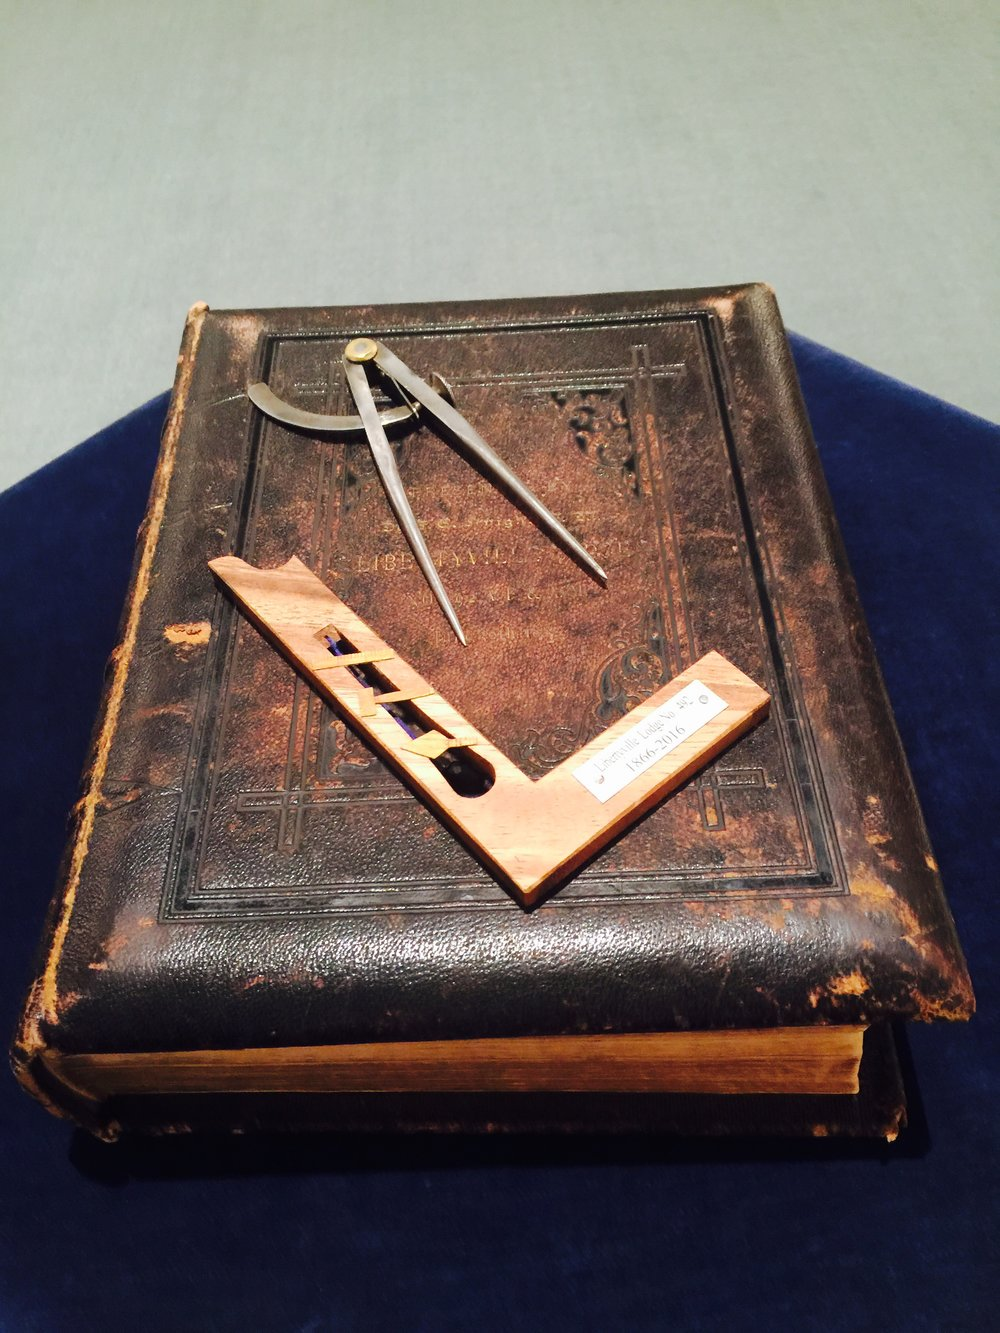 Alter Bible donated on June 30, 1883 and Square and Compasses donated on October 14, 2016